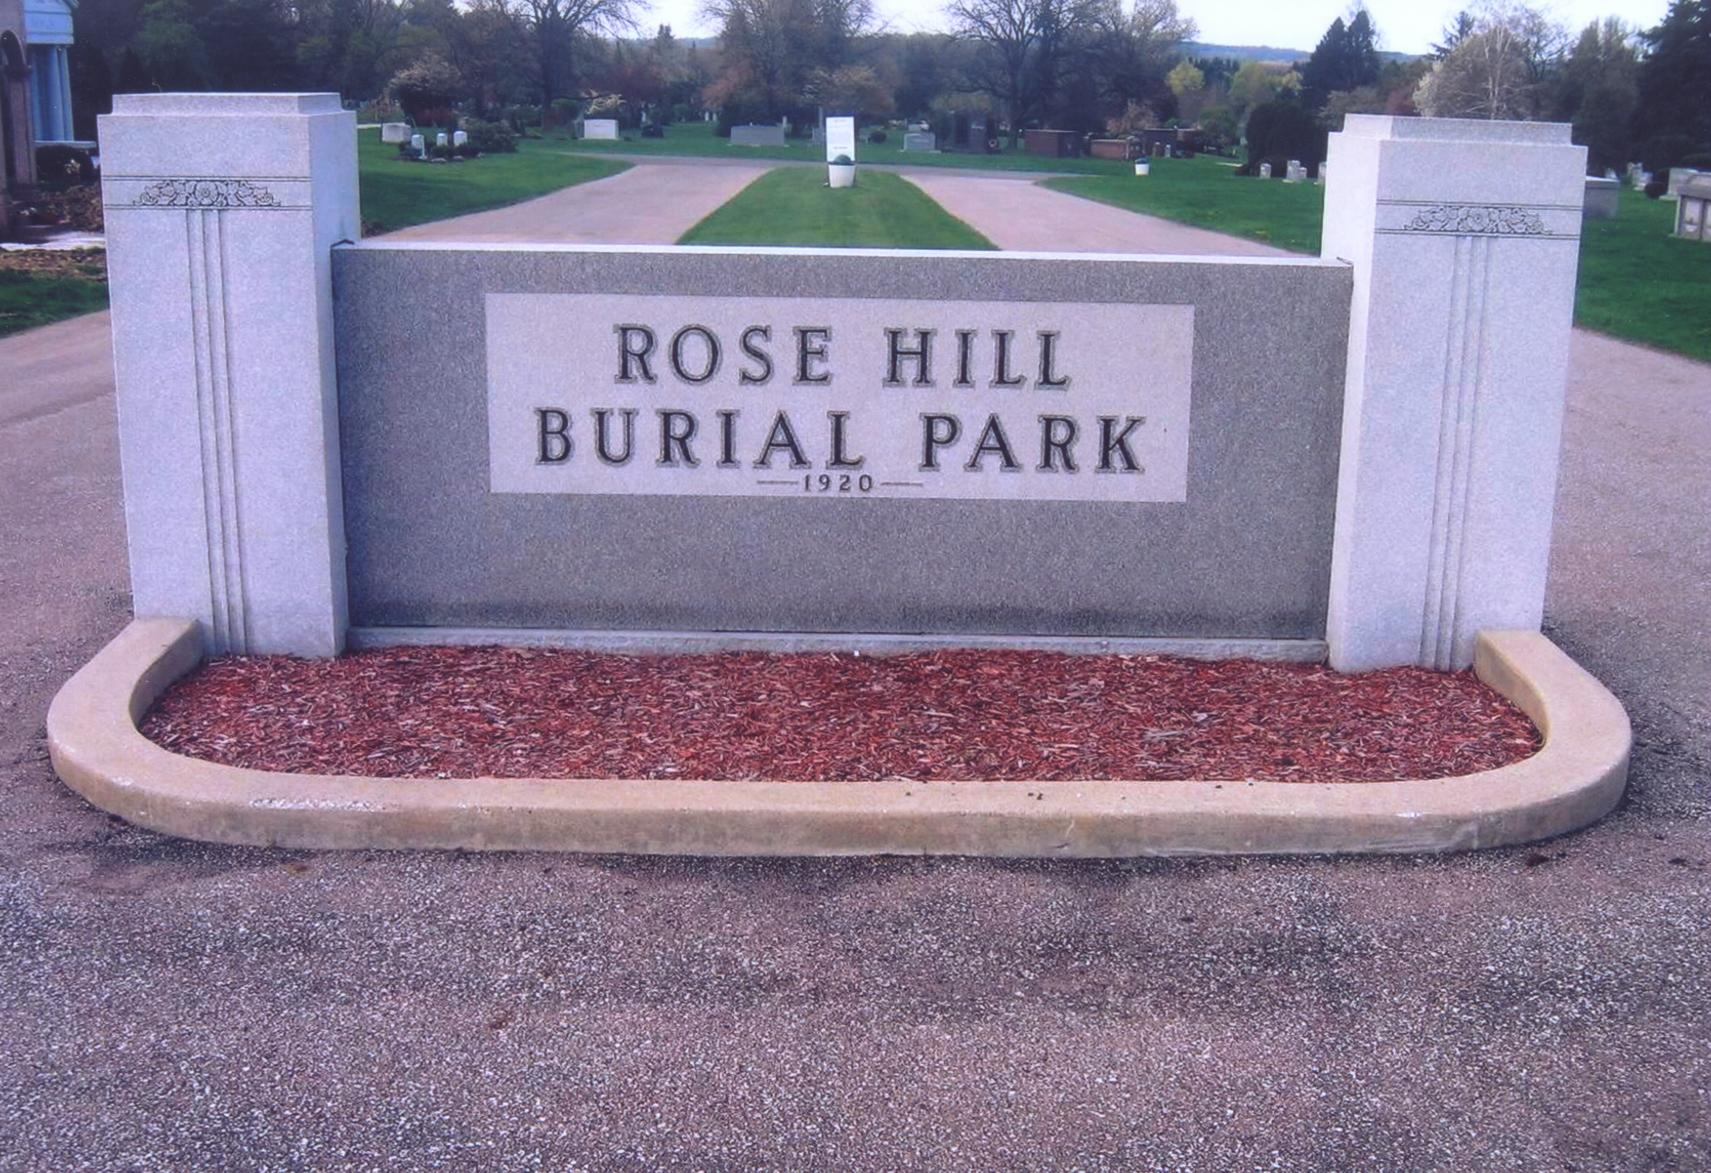 Rose Hill Burial Park